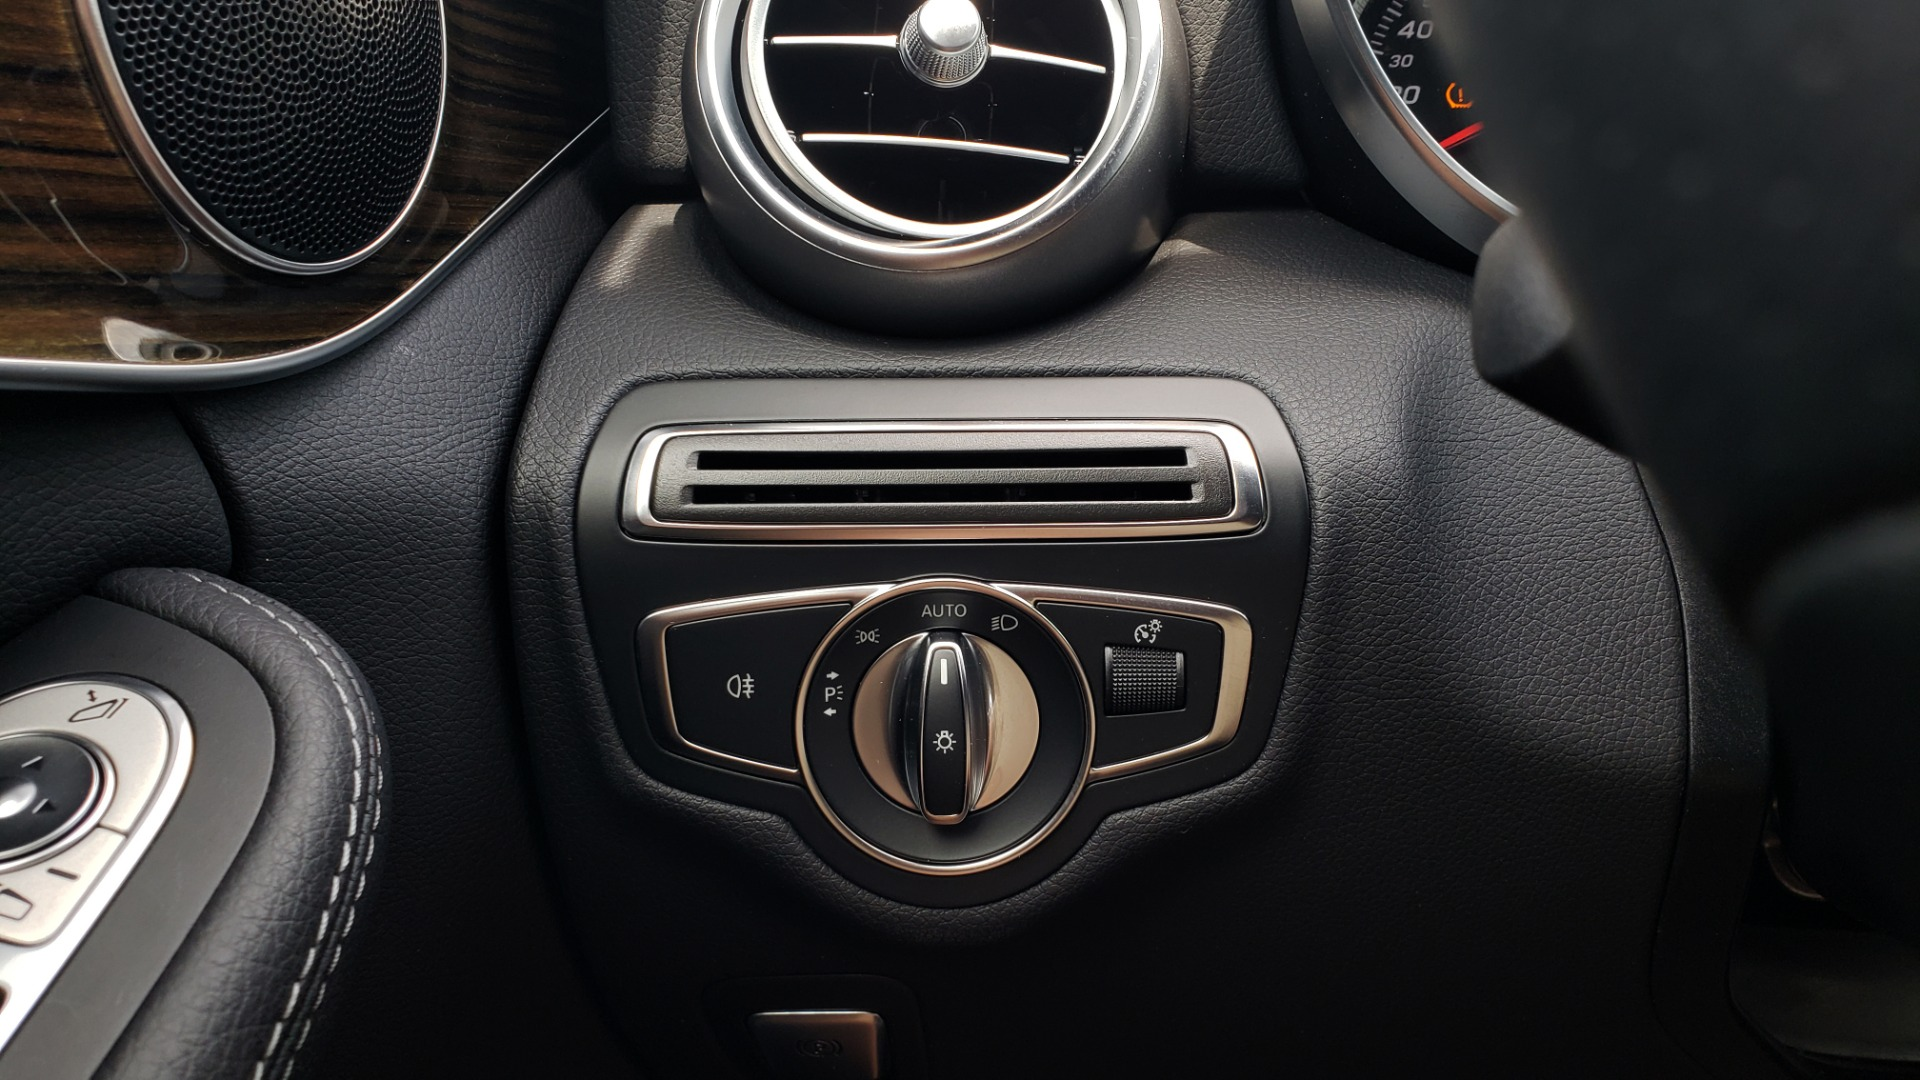 Used 2018 Mercedes-Benz C-CLASS C 300 PREMIUM / HTD STS / APPLE CARPLAY / 18IN WHEELS / REARVIEW for sale $24,795 at Formula Imports in Charlotte NC 28227 41